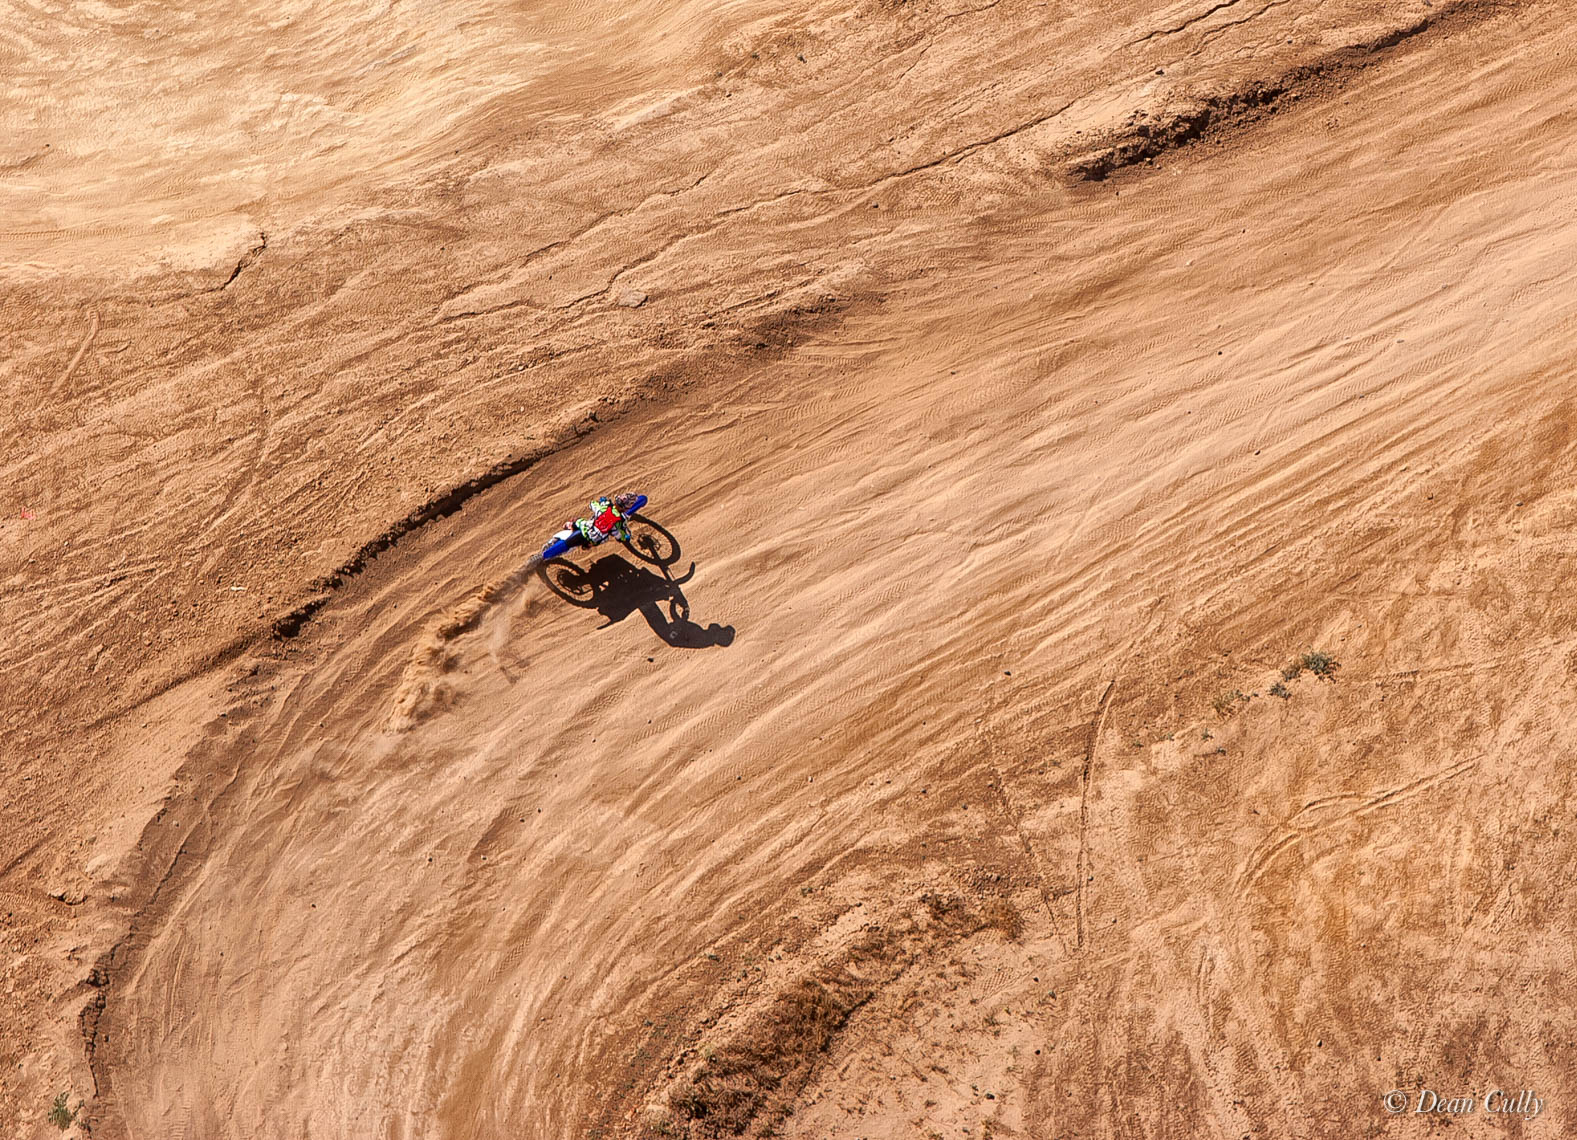 Dirt-Biking Below—California Central Valley